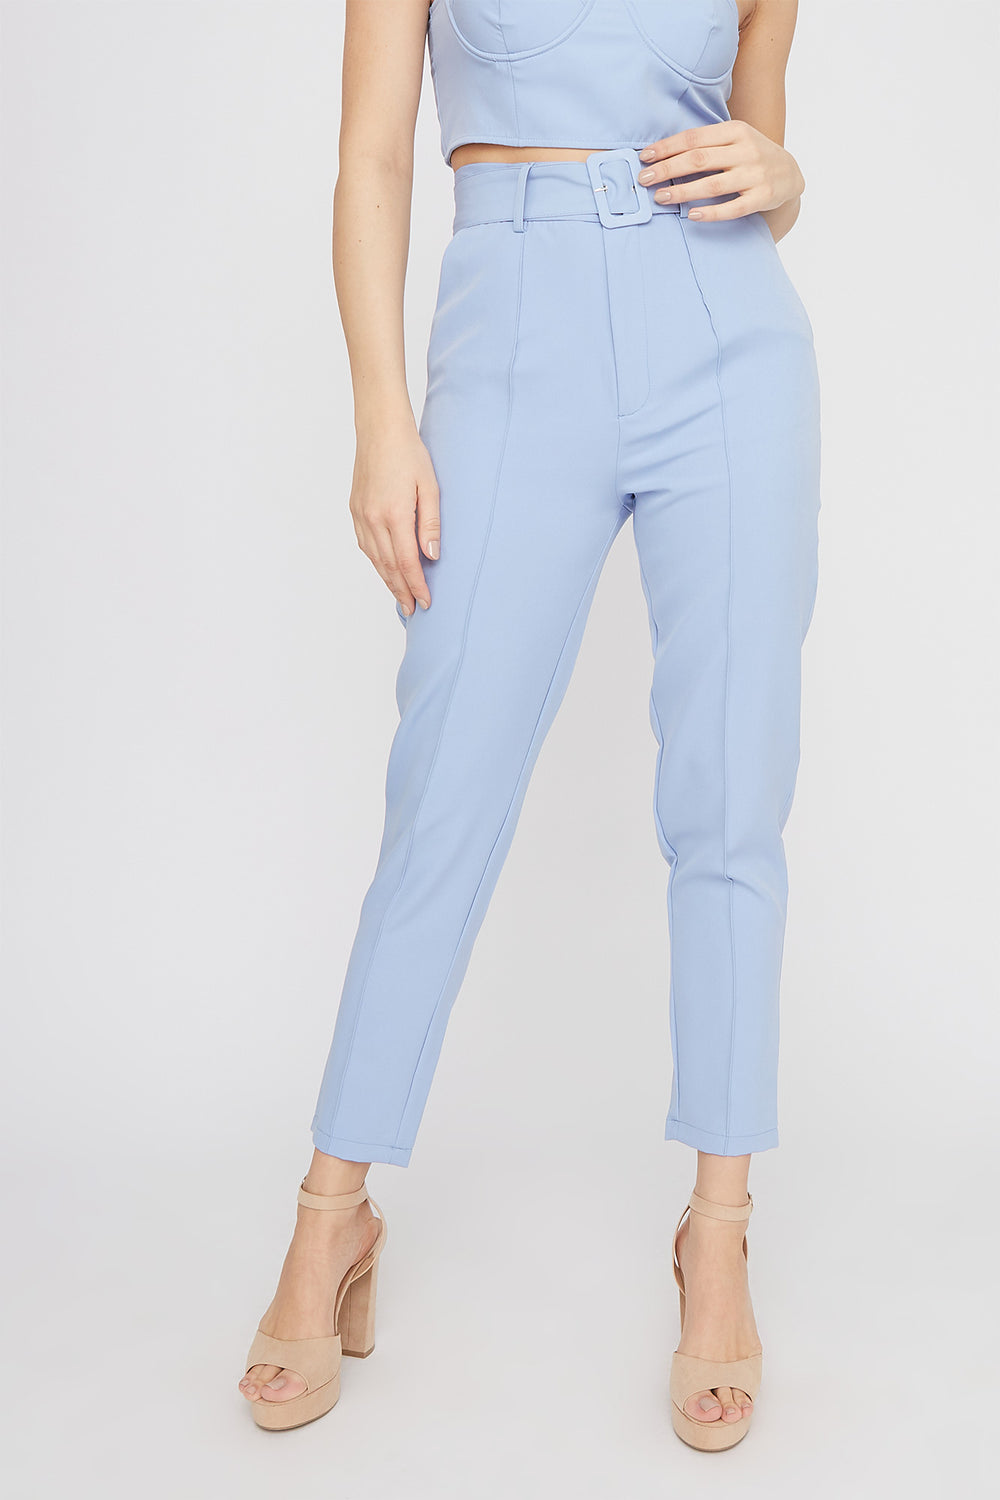 High-Rise Belted Single Pleat Pant Light Blue